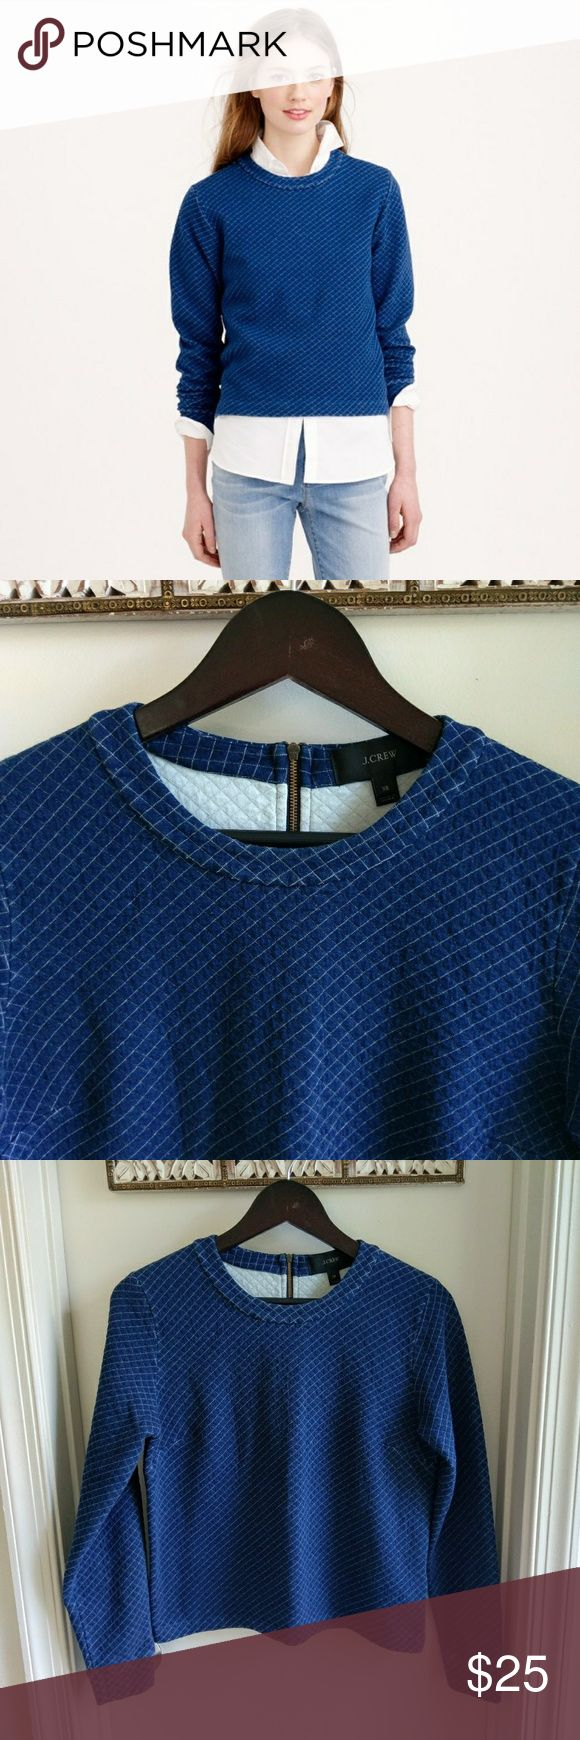 J crew Quilted indigo sweatshirt Minimal signs of wear. 100% cotton. Length 21 in, bust  flat lay 18 in. All reasonable offers considered!! J. Crew Tops